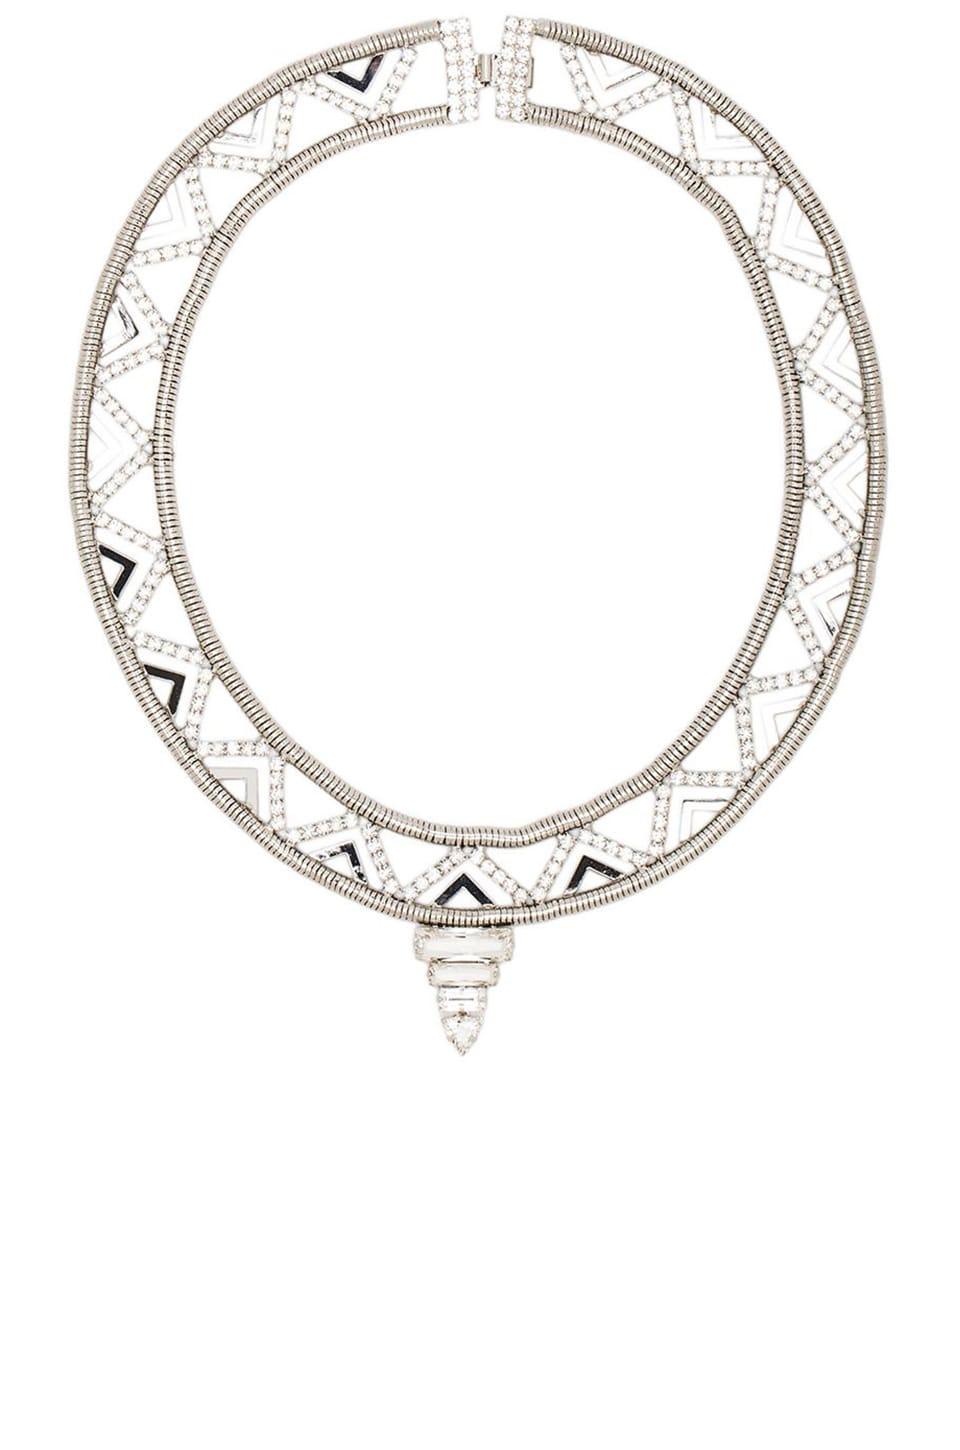 Nicole Meng Deco Tower Collar in Silver/Crystal